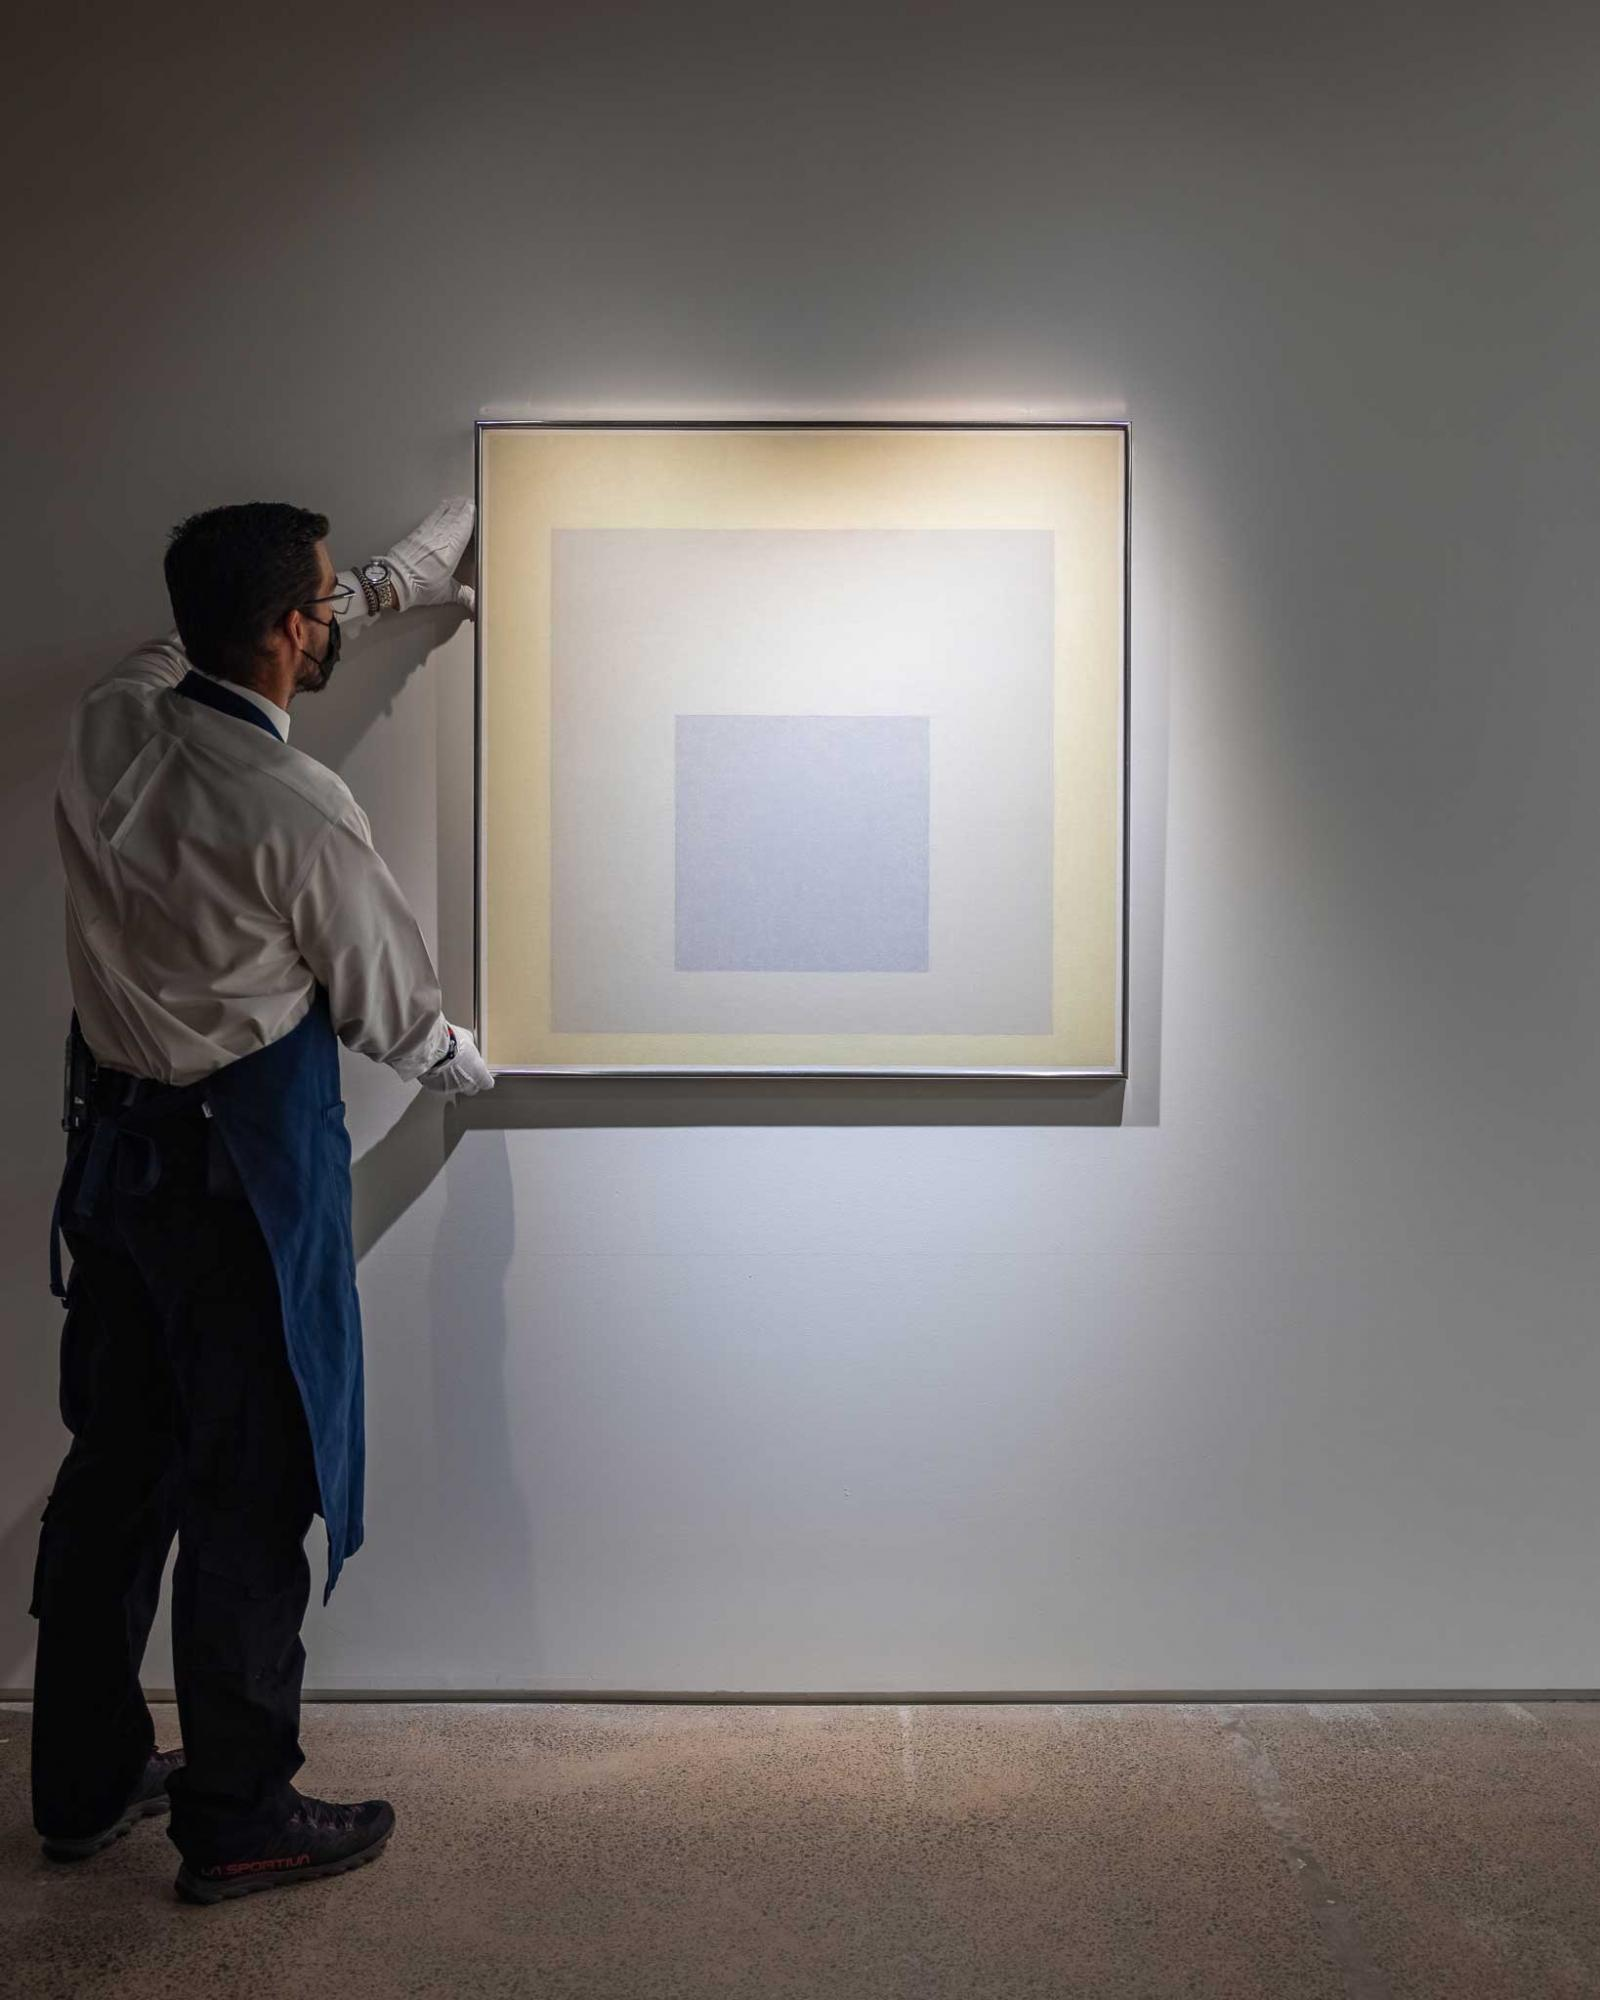 Lot-113---Josef-Albers,-Study-for-Homage-to-the-Square---Shaded-Shade,-est.jpg